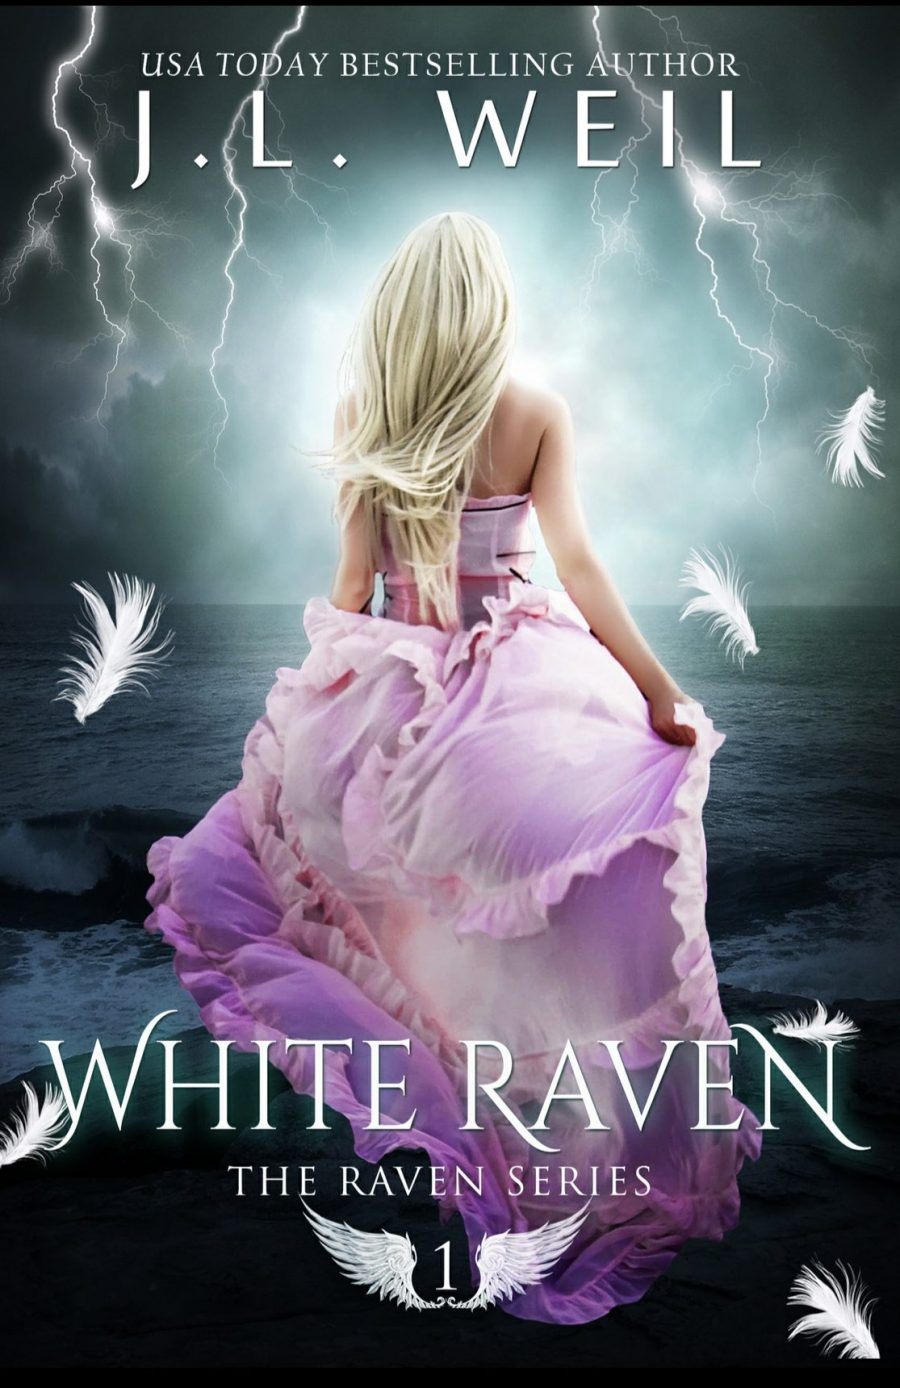 White Raven *The Raven Series - Book 1* by J.L. Weil - A Book Review #BookReview #YA #PNR #ParanormalRomance #CompleteSeries